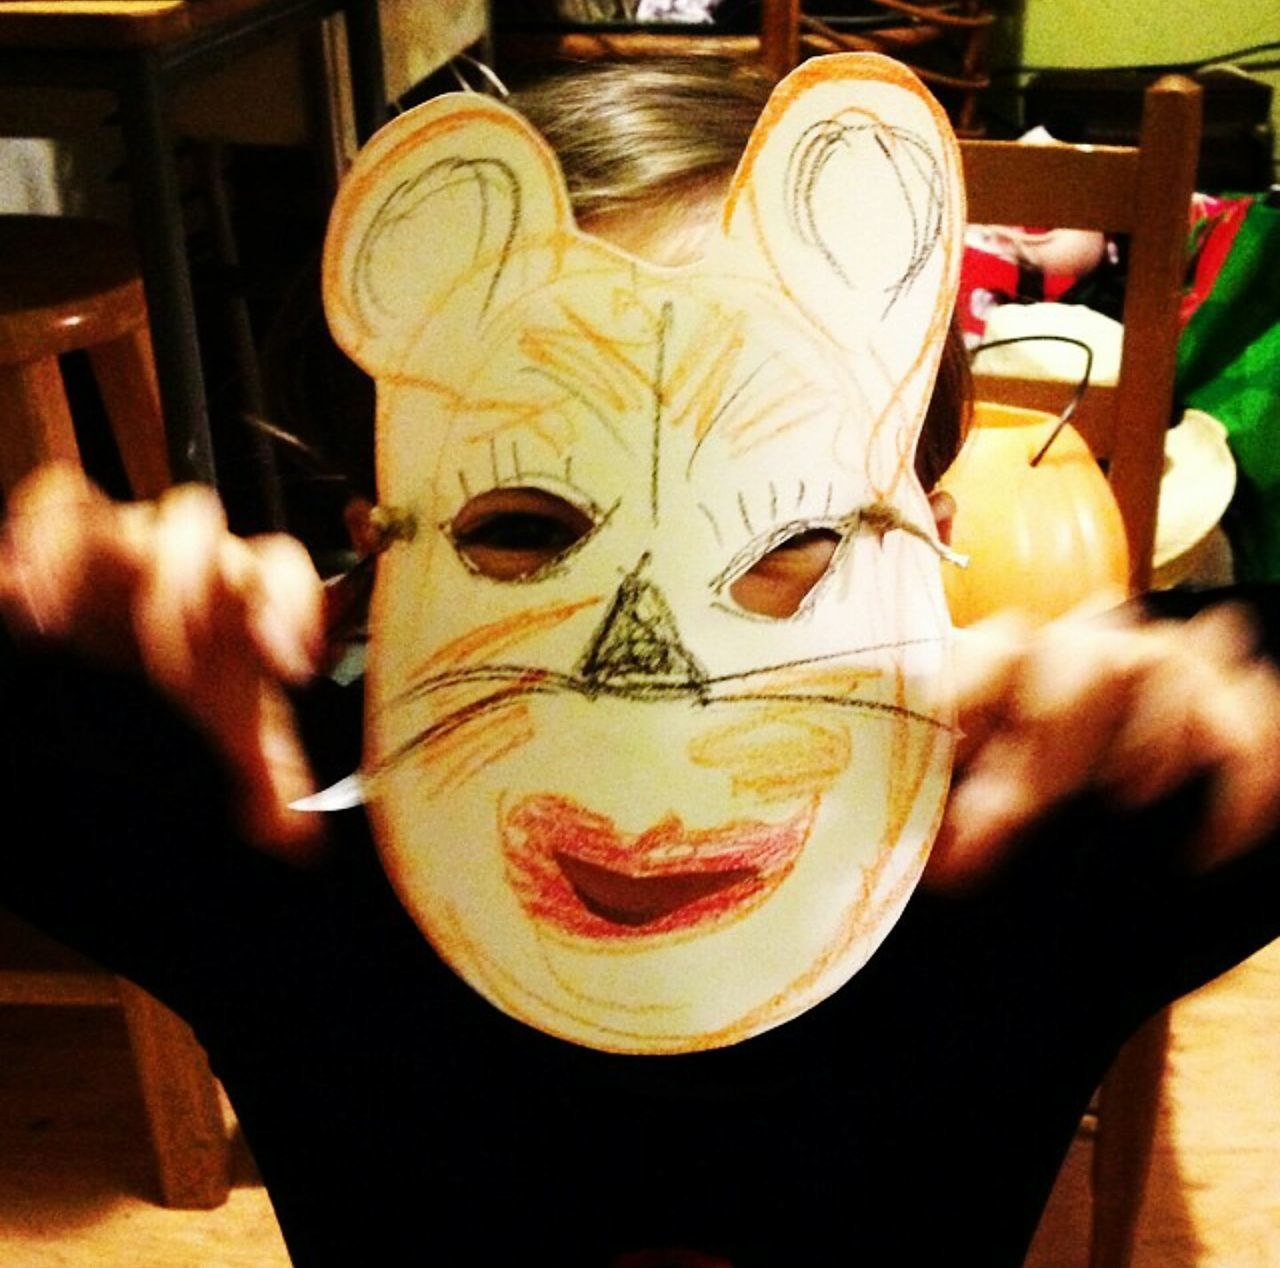 Tiger Art Mask Children Portraits Play Creative Child Little Monster